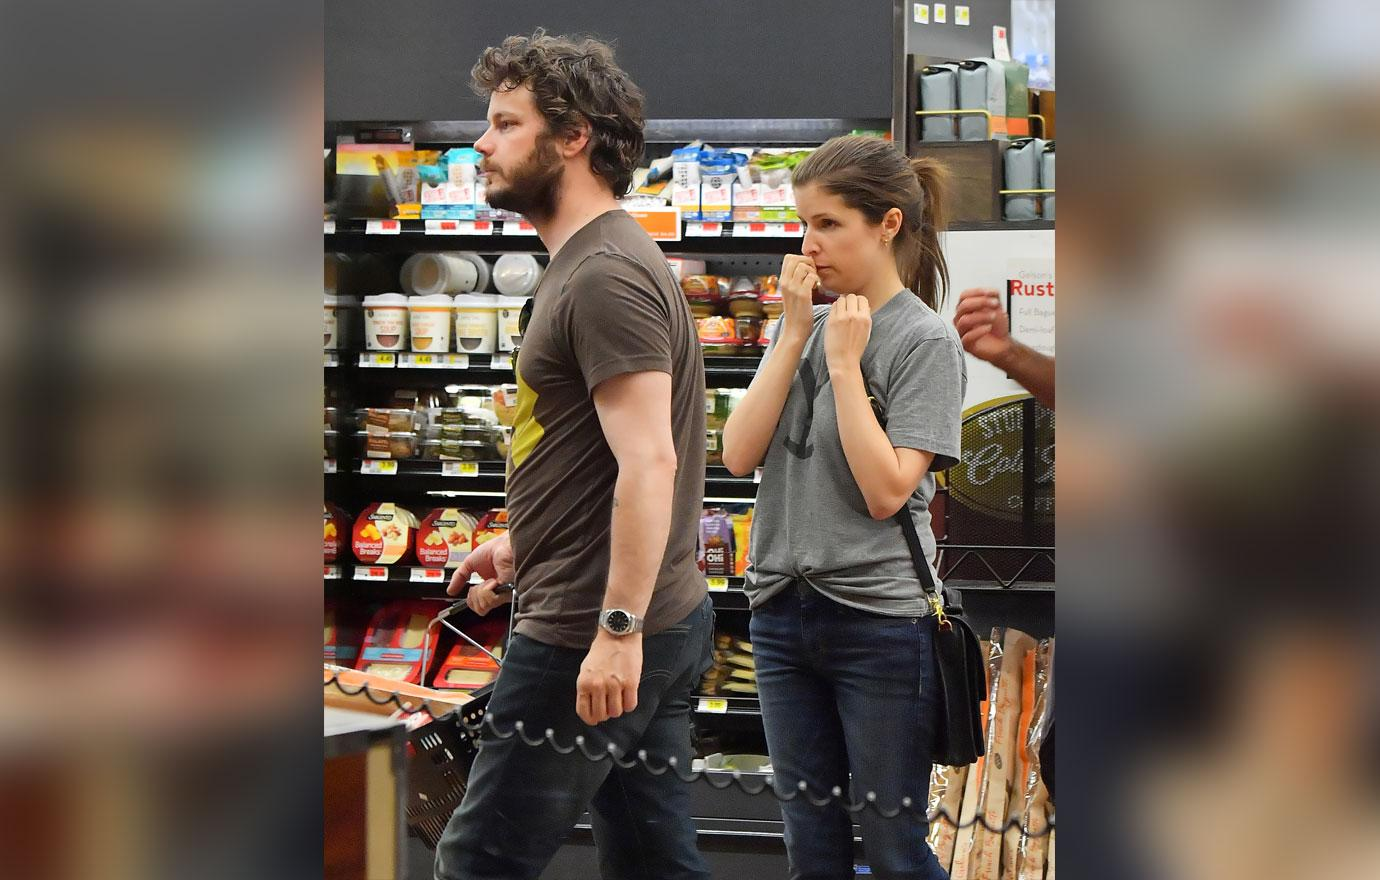 Who Is Anna Kendrick Dating?